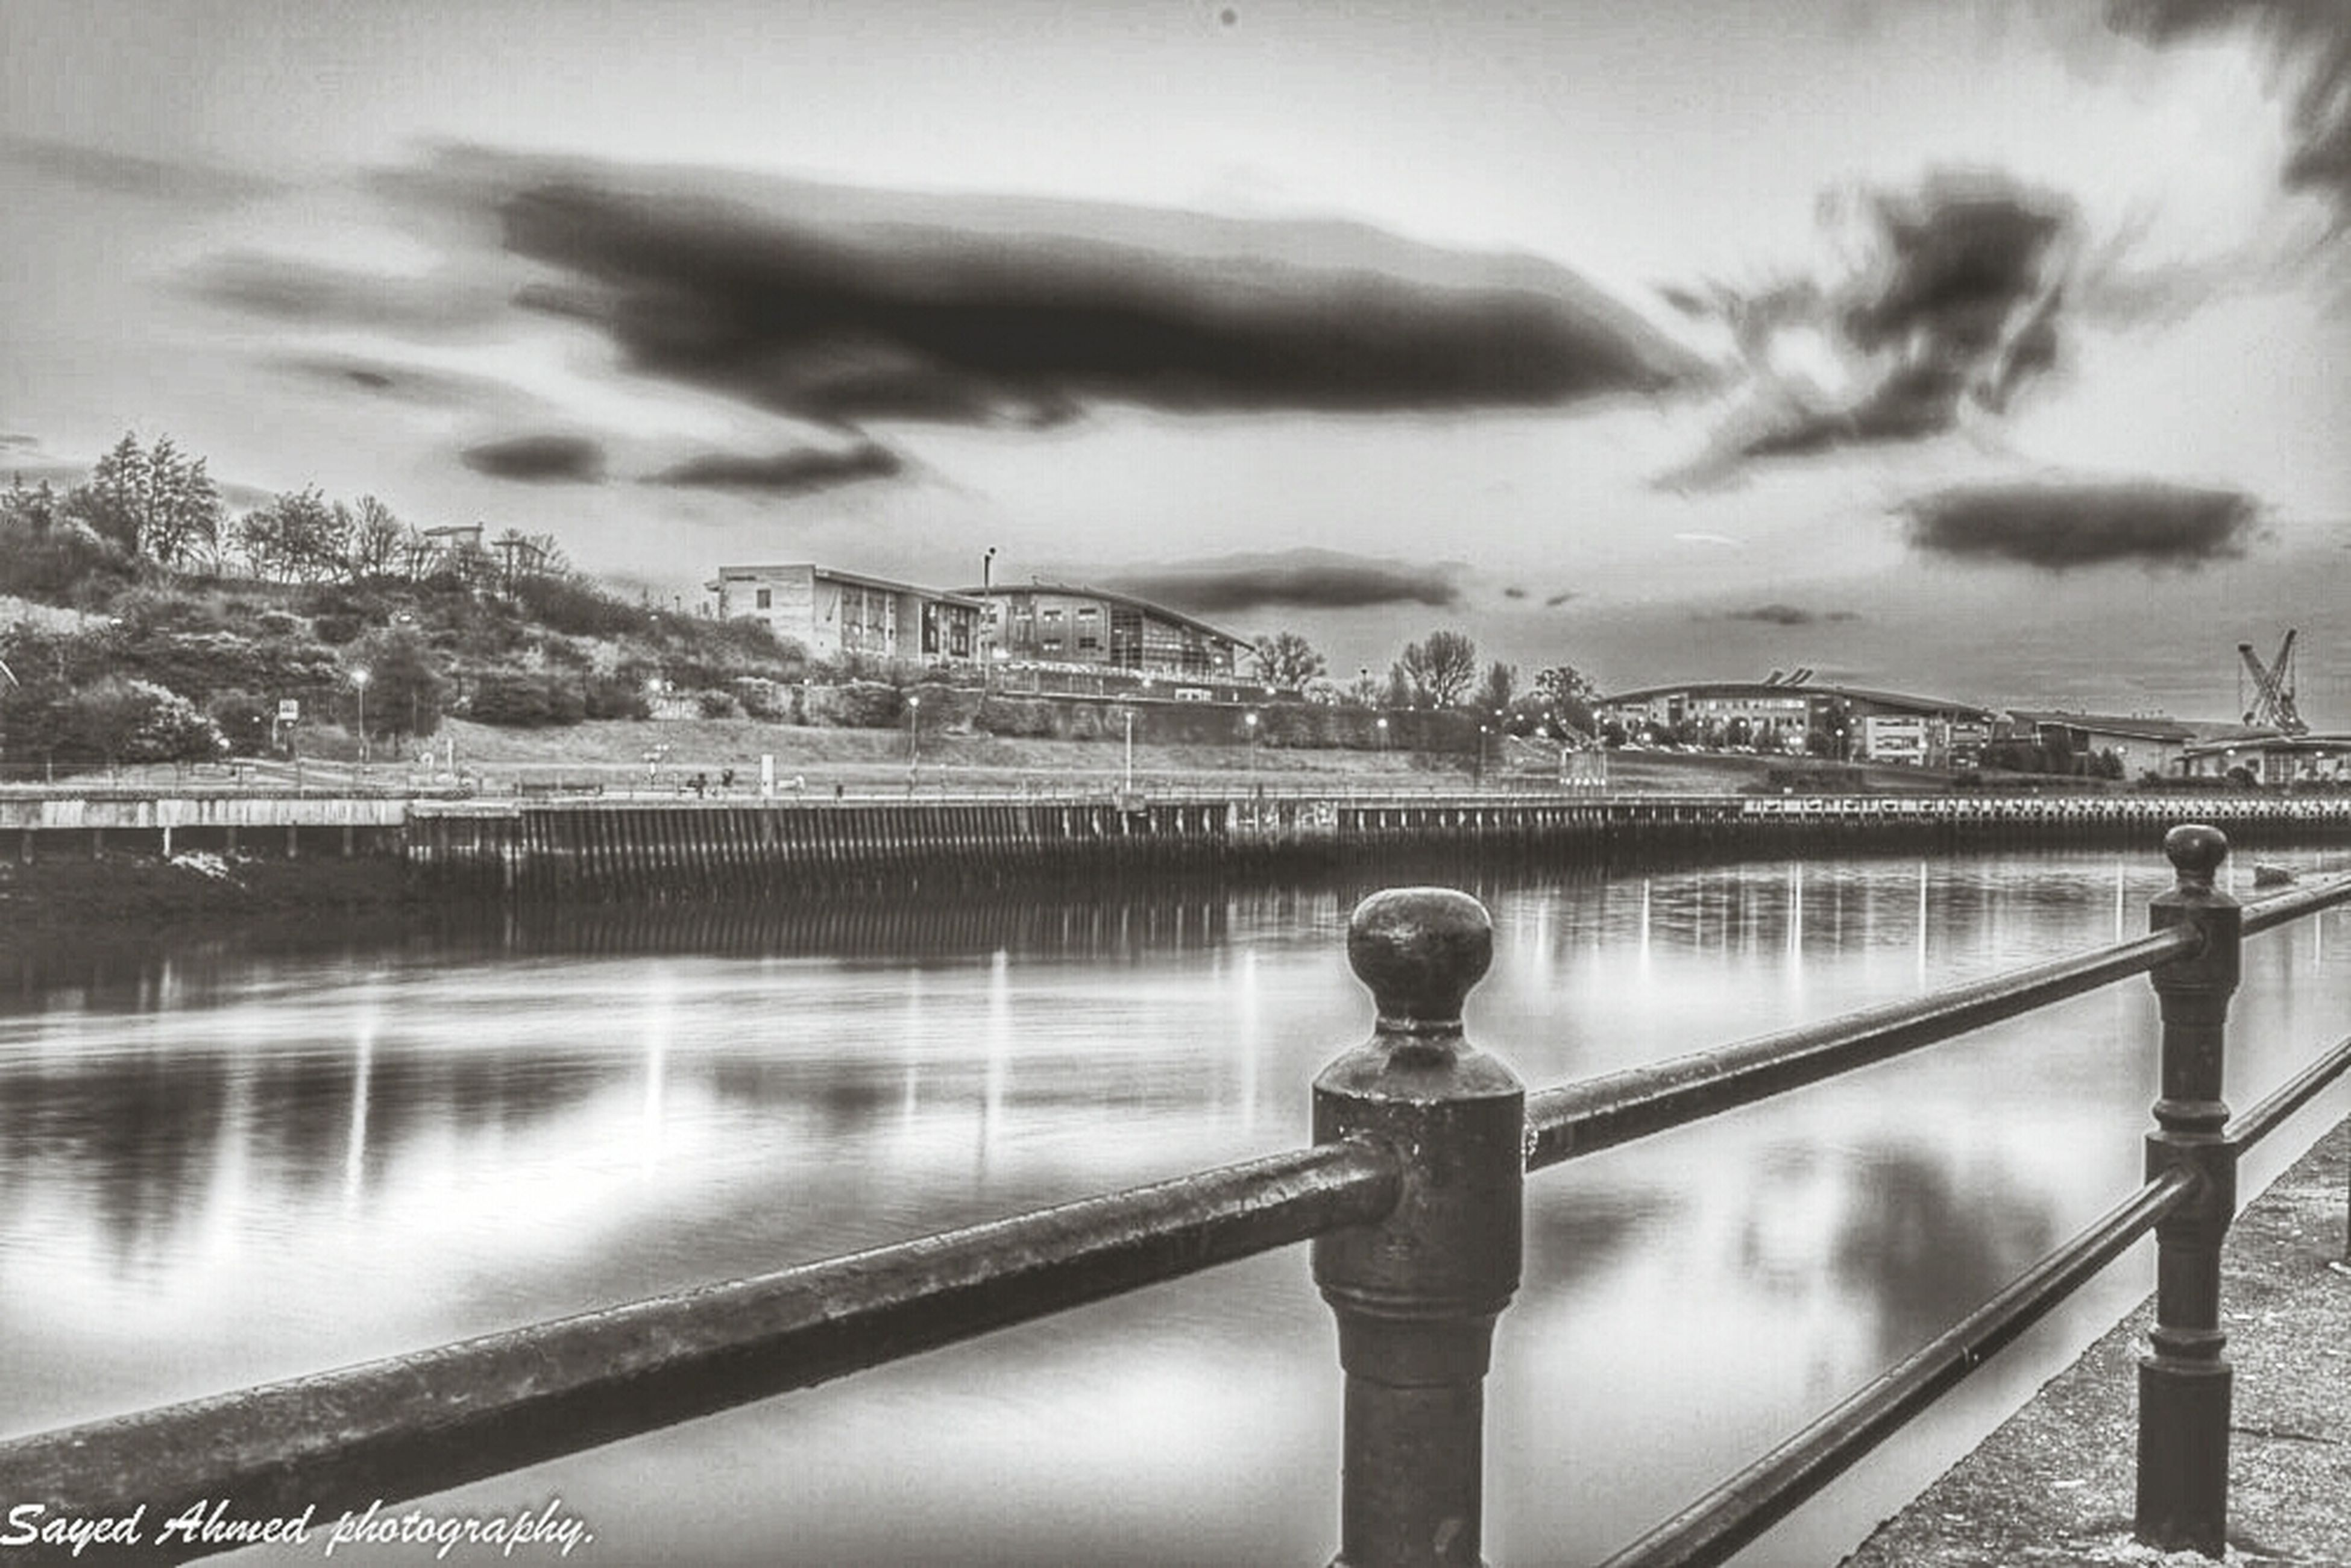 railing, water, sky, architecture, built structure, bridge - man made structure, river, building exterior, connection, cloud - sky, city, metal, one person, cityscape, outdoors, dusk, bridge, day, weather, standing